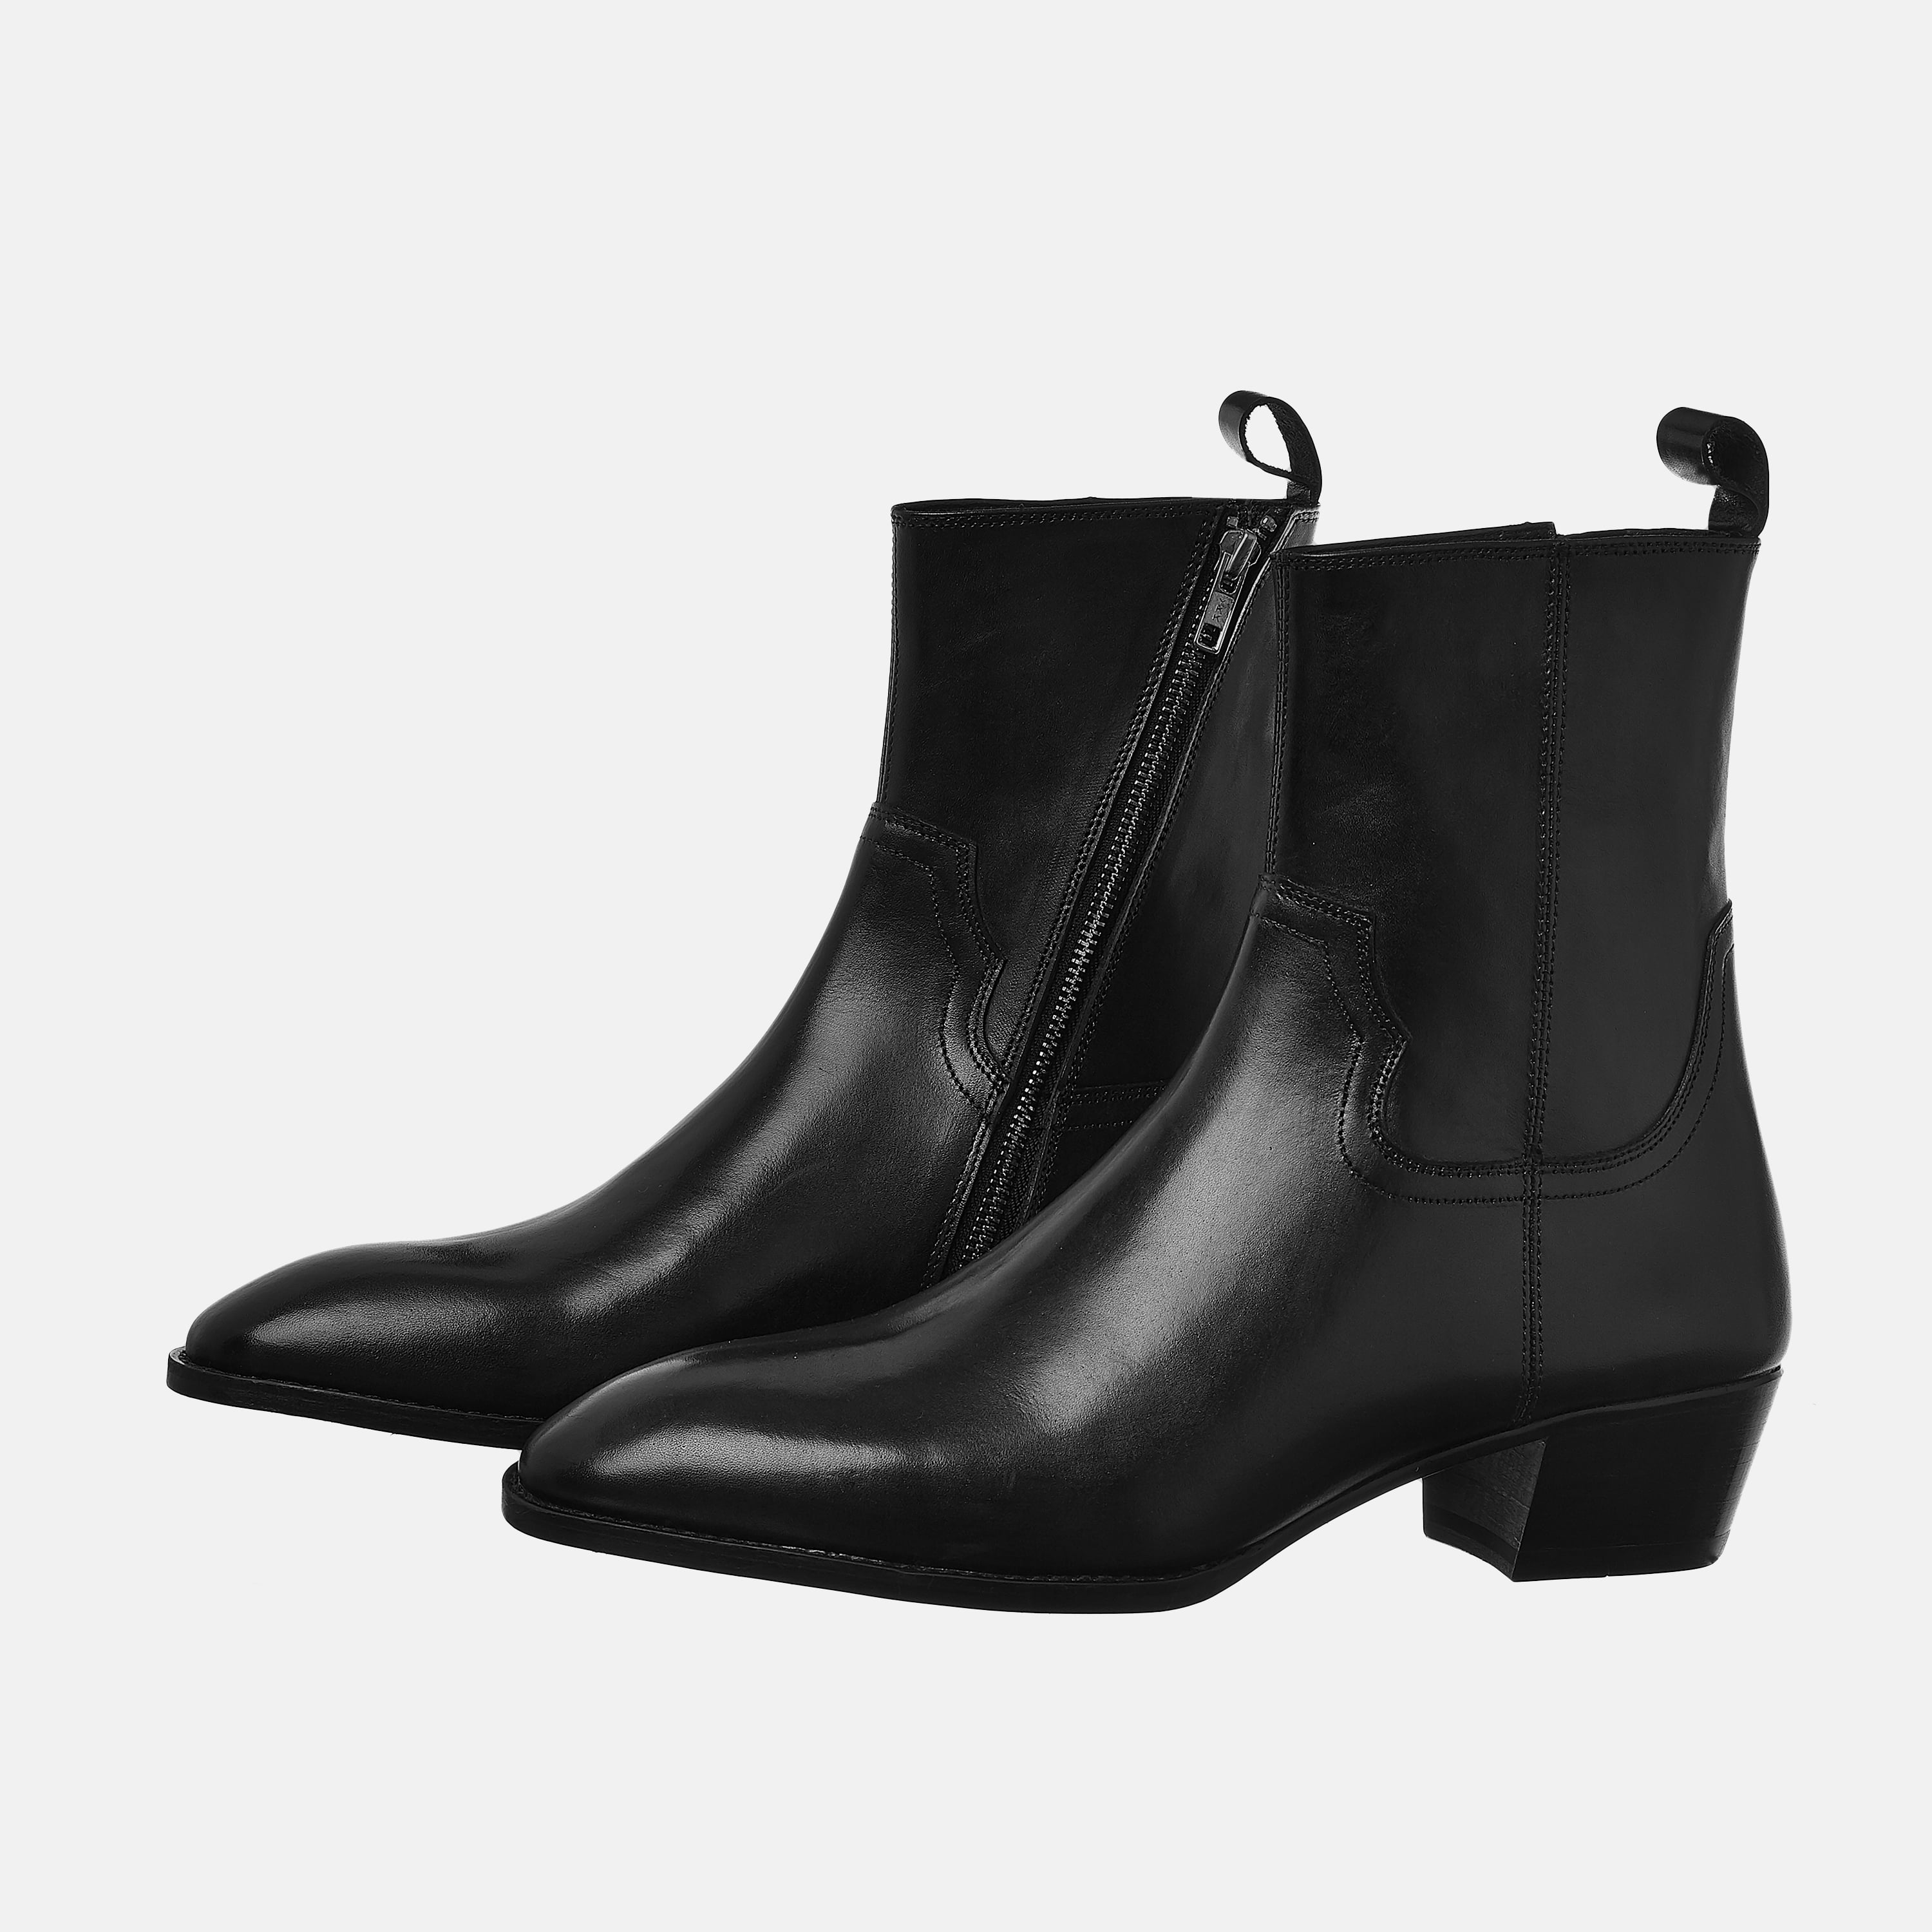 Leather Zip Boots In Black Leather Zip Boots In Black SS2020 1 1